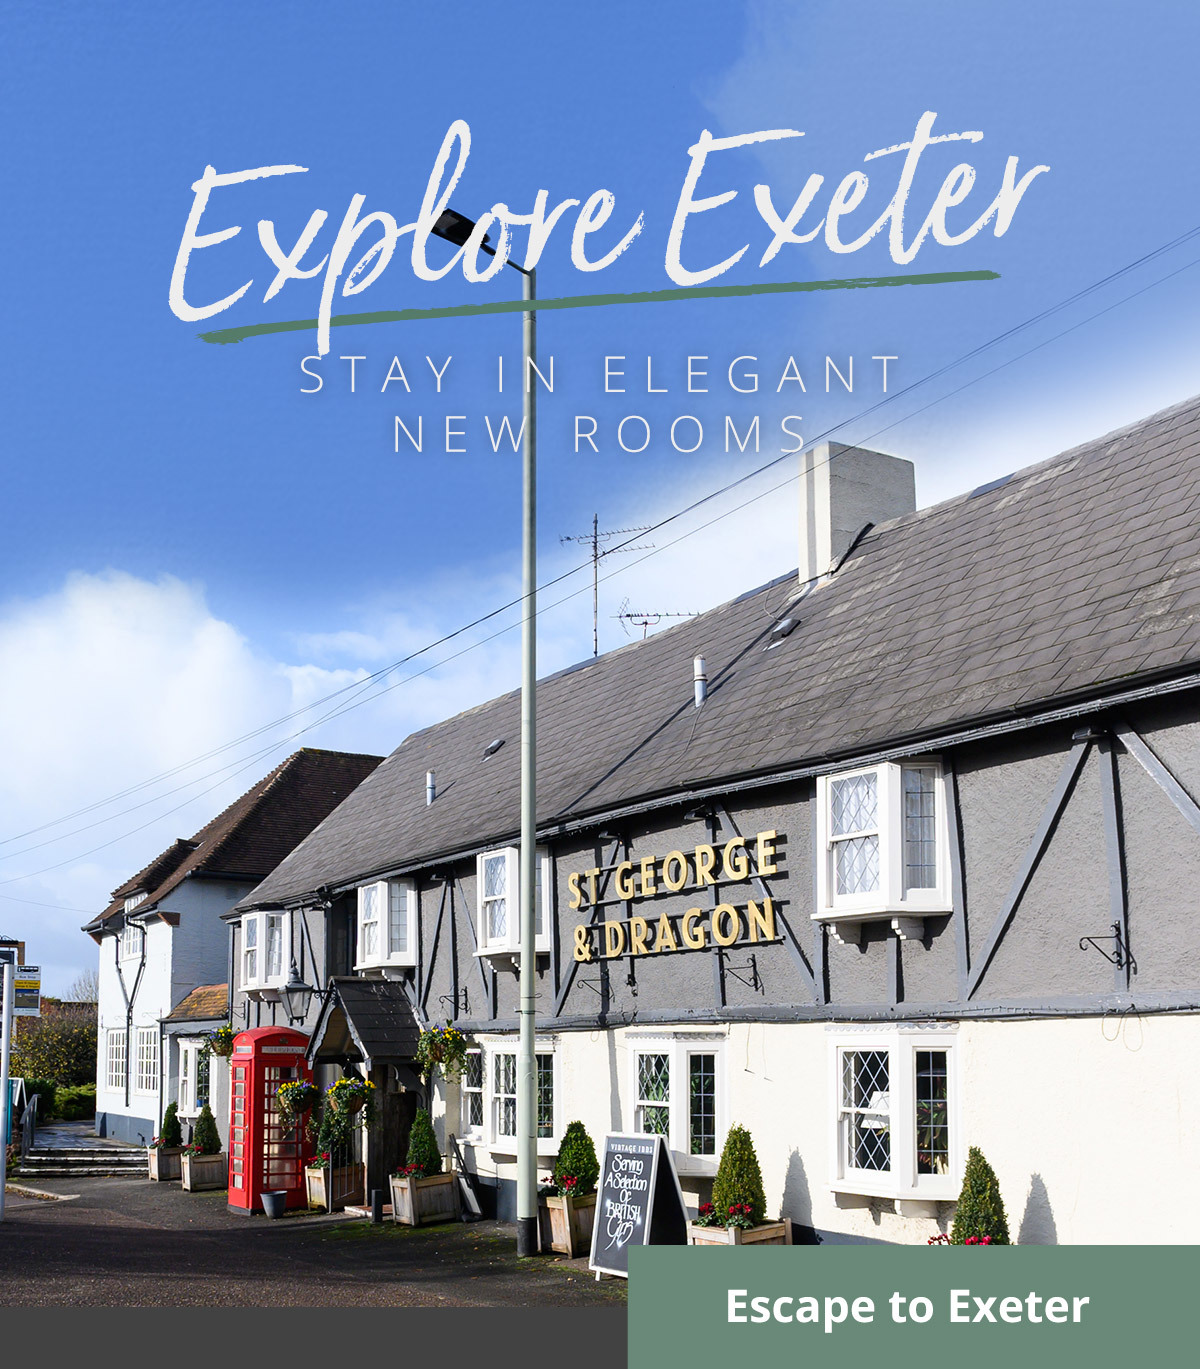 Our St George & Dragon hotel in Exeter is better than ever. Explore Exeter's outdoor beauty and book your room now.